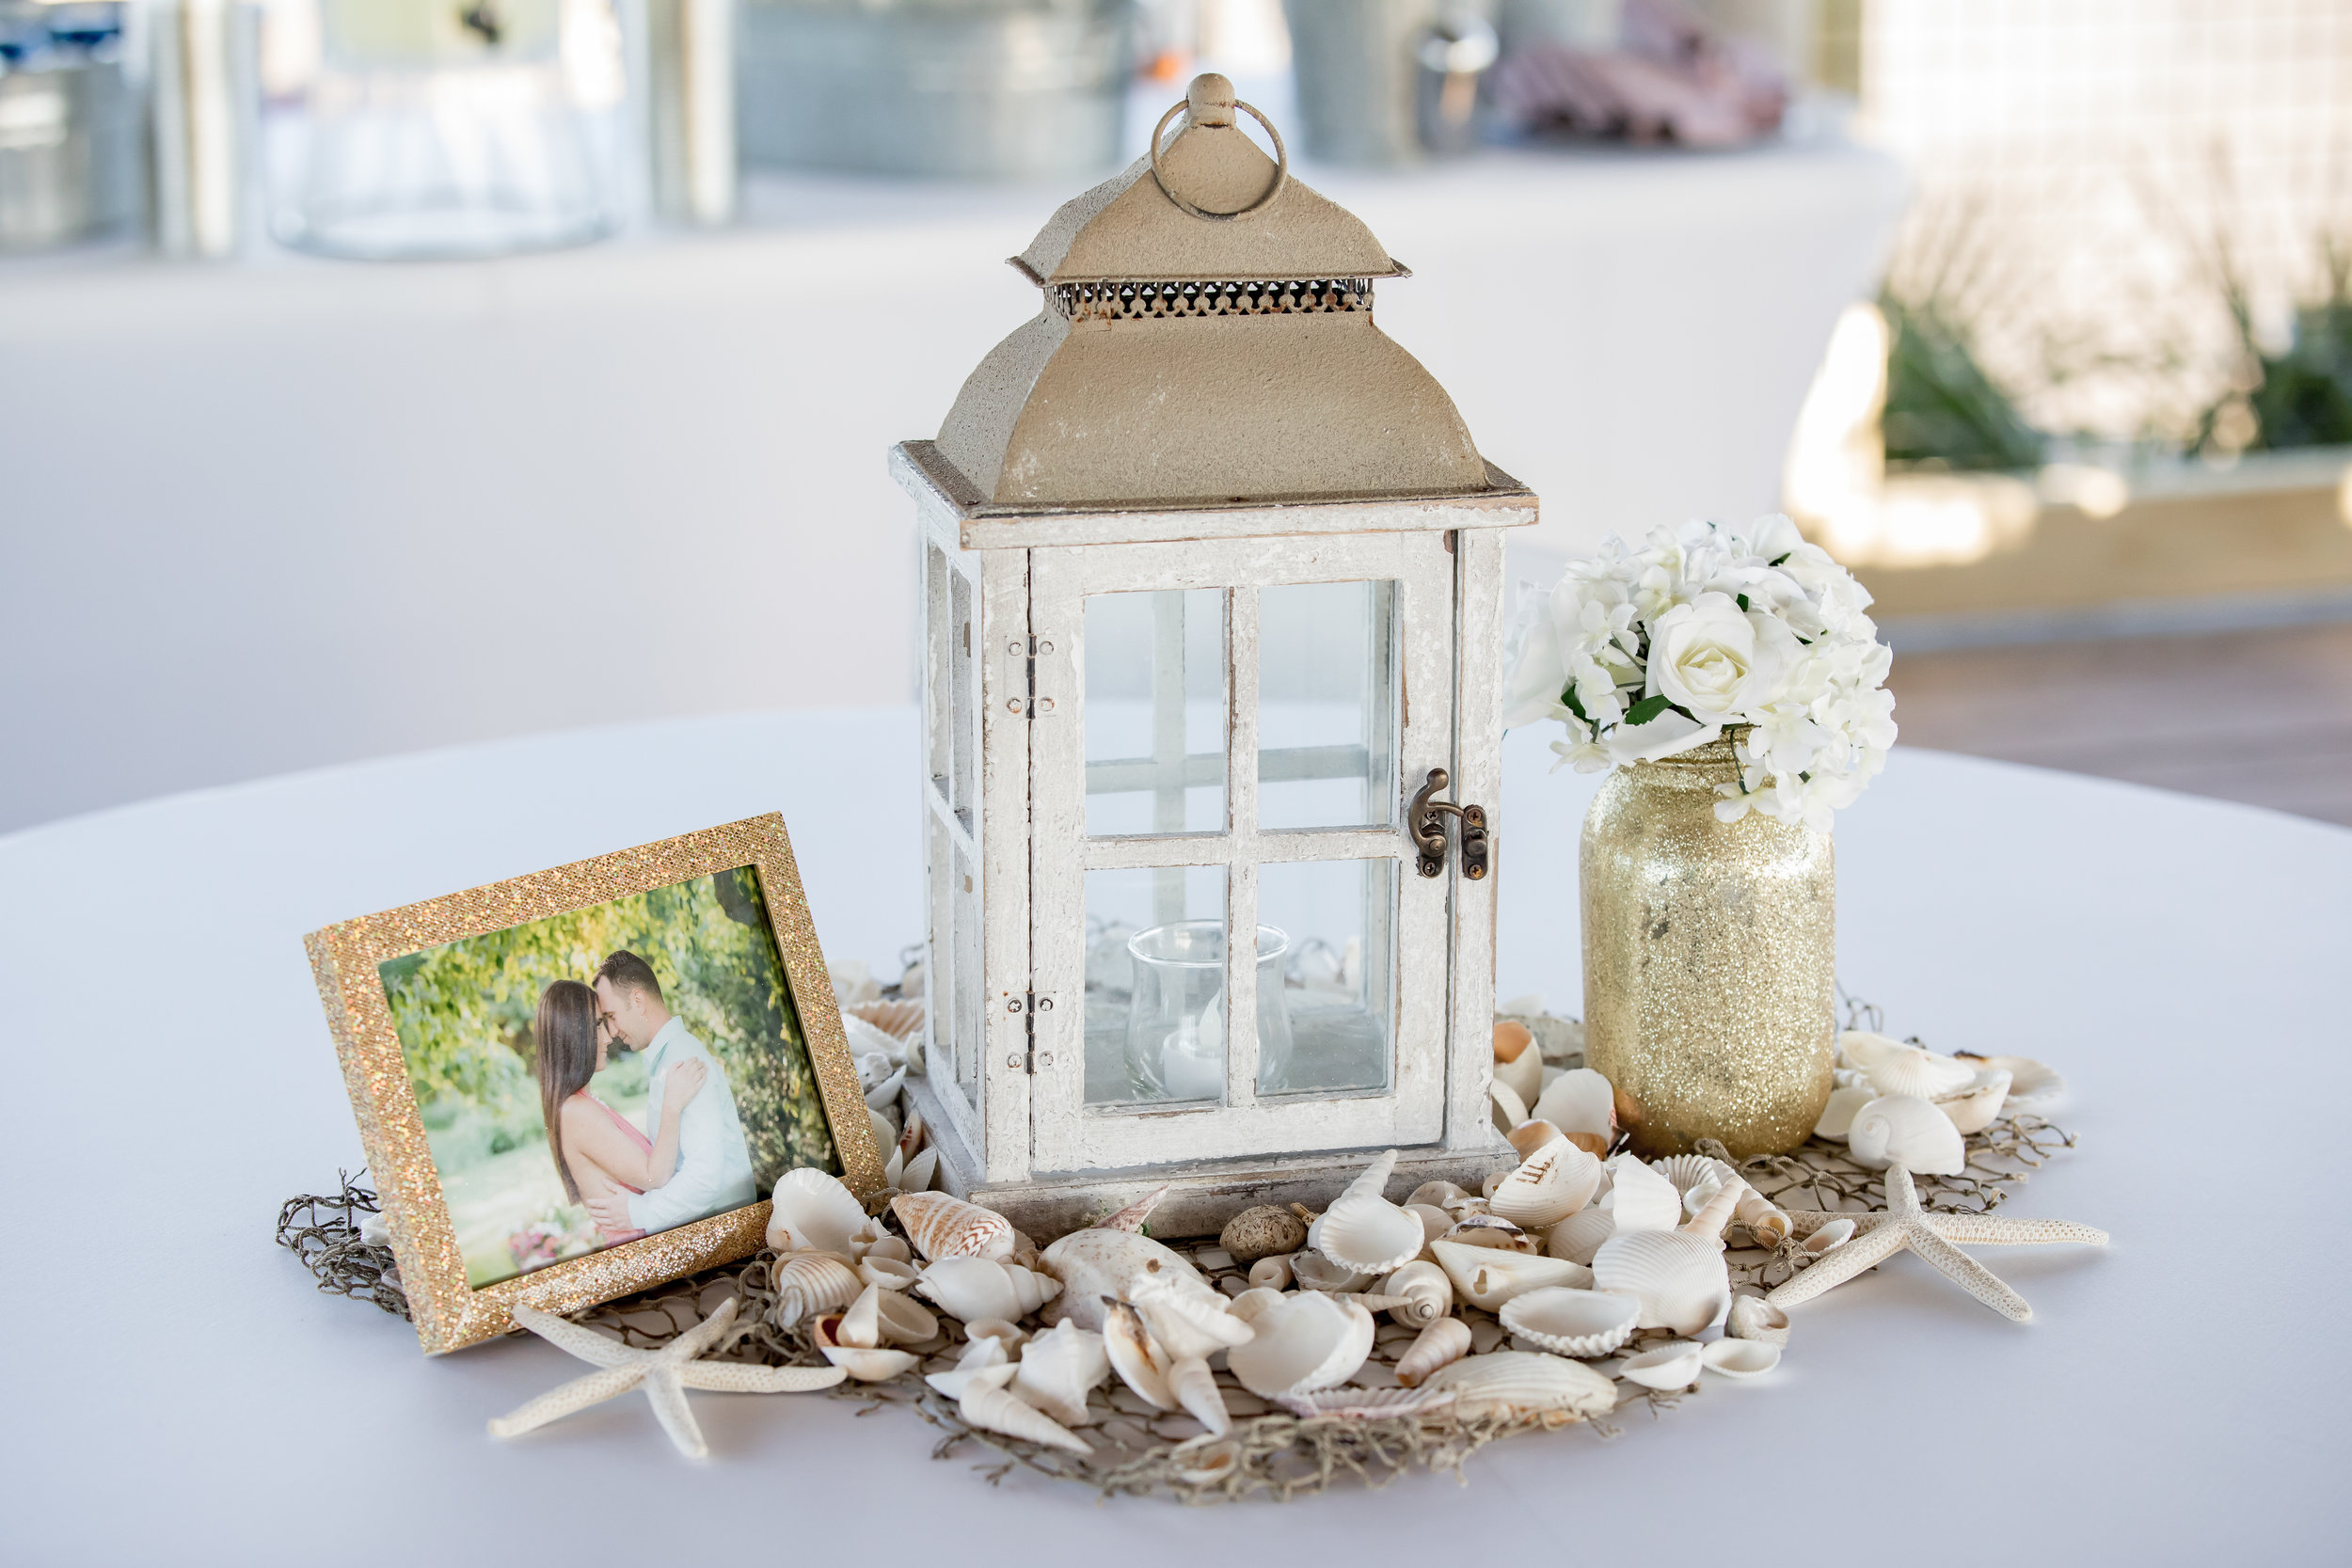 Choose from one of our rustic chic beach reception packages to add convenience to your wedding planning. We have a wide variety of vendors that we coordinate with to simplify your wedding preparation